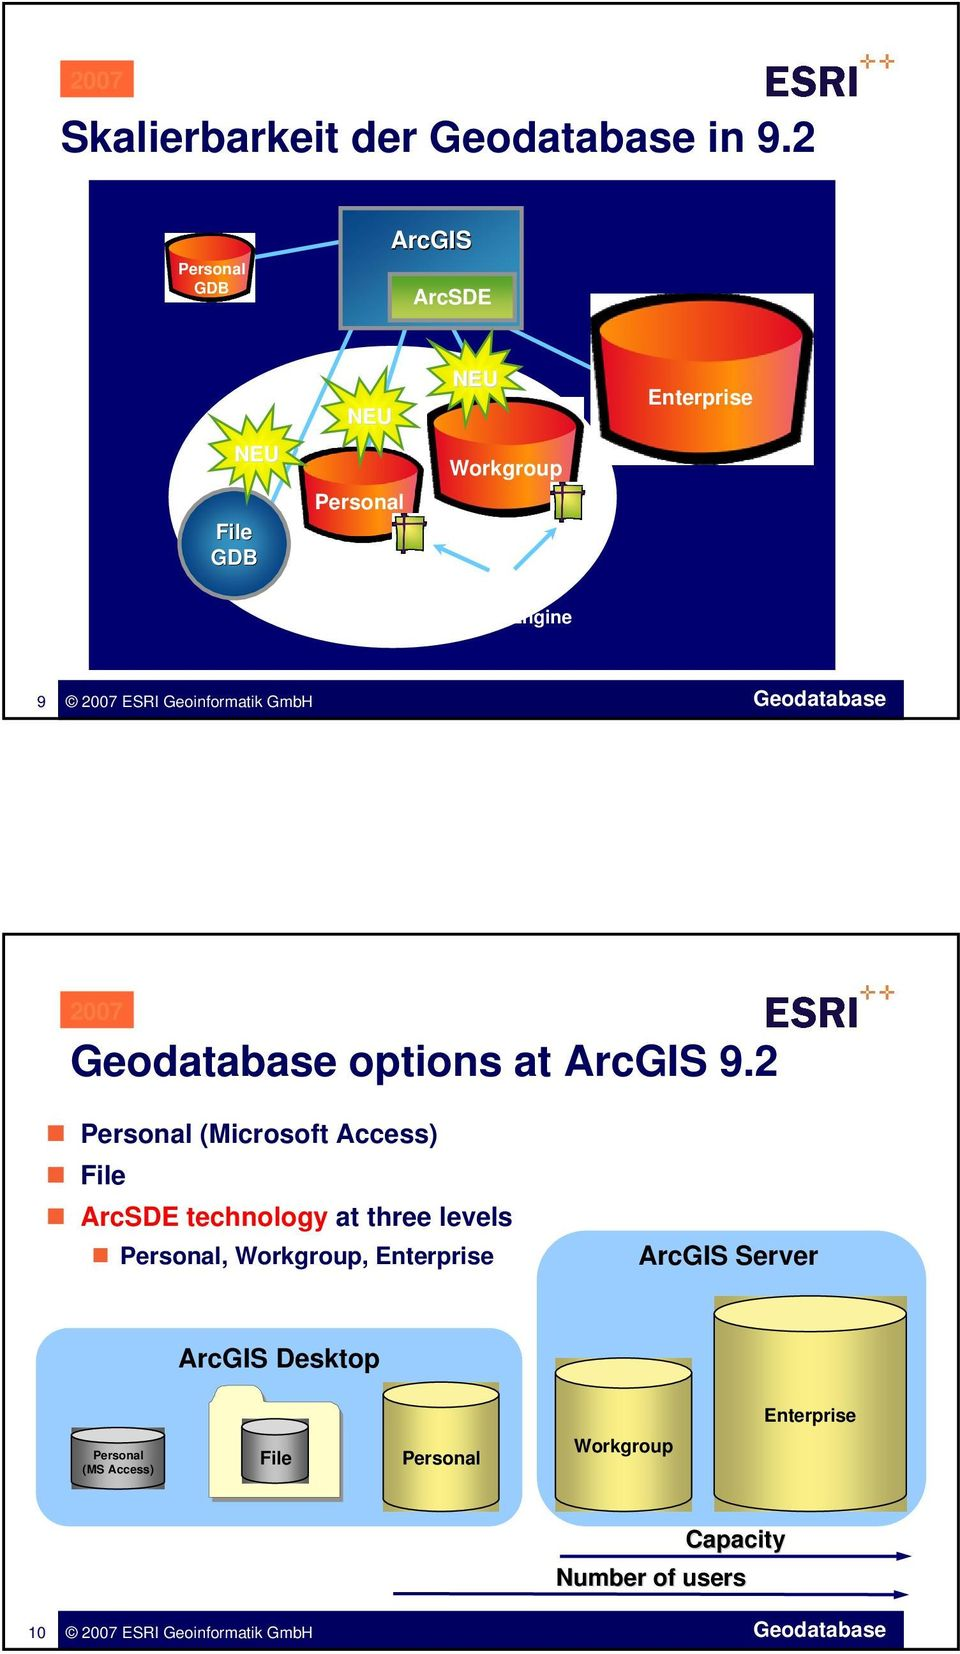 Database Engine 9 options at ArcGIS 9.